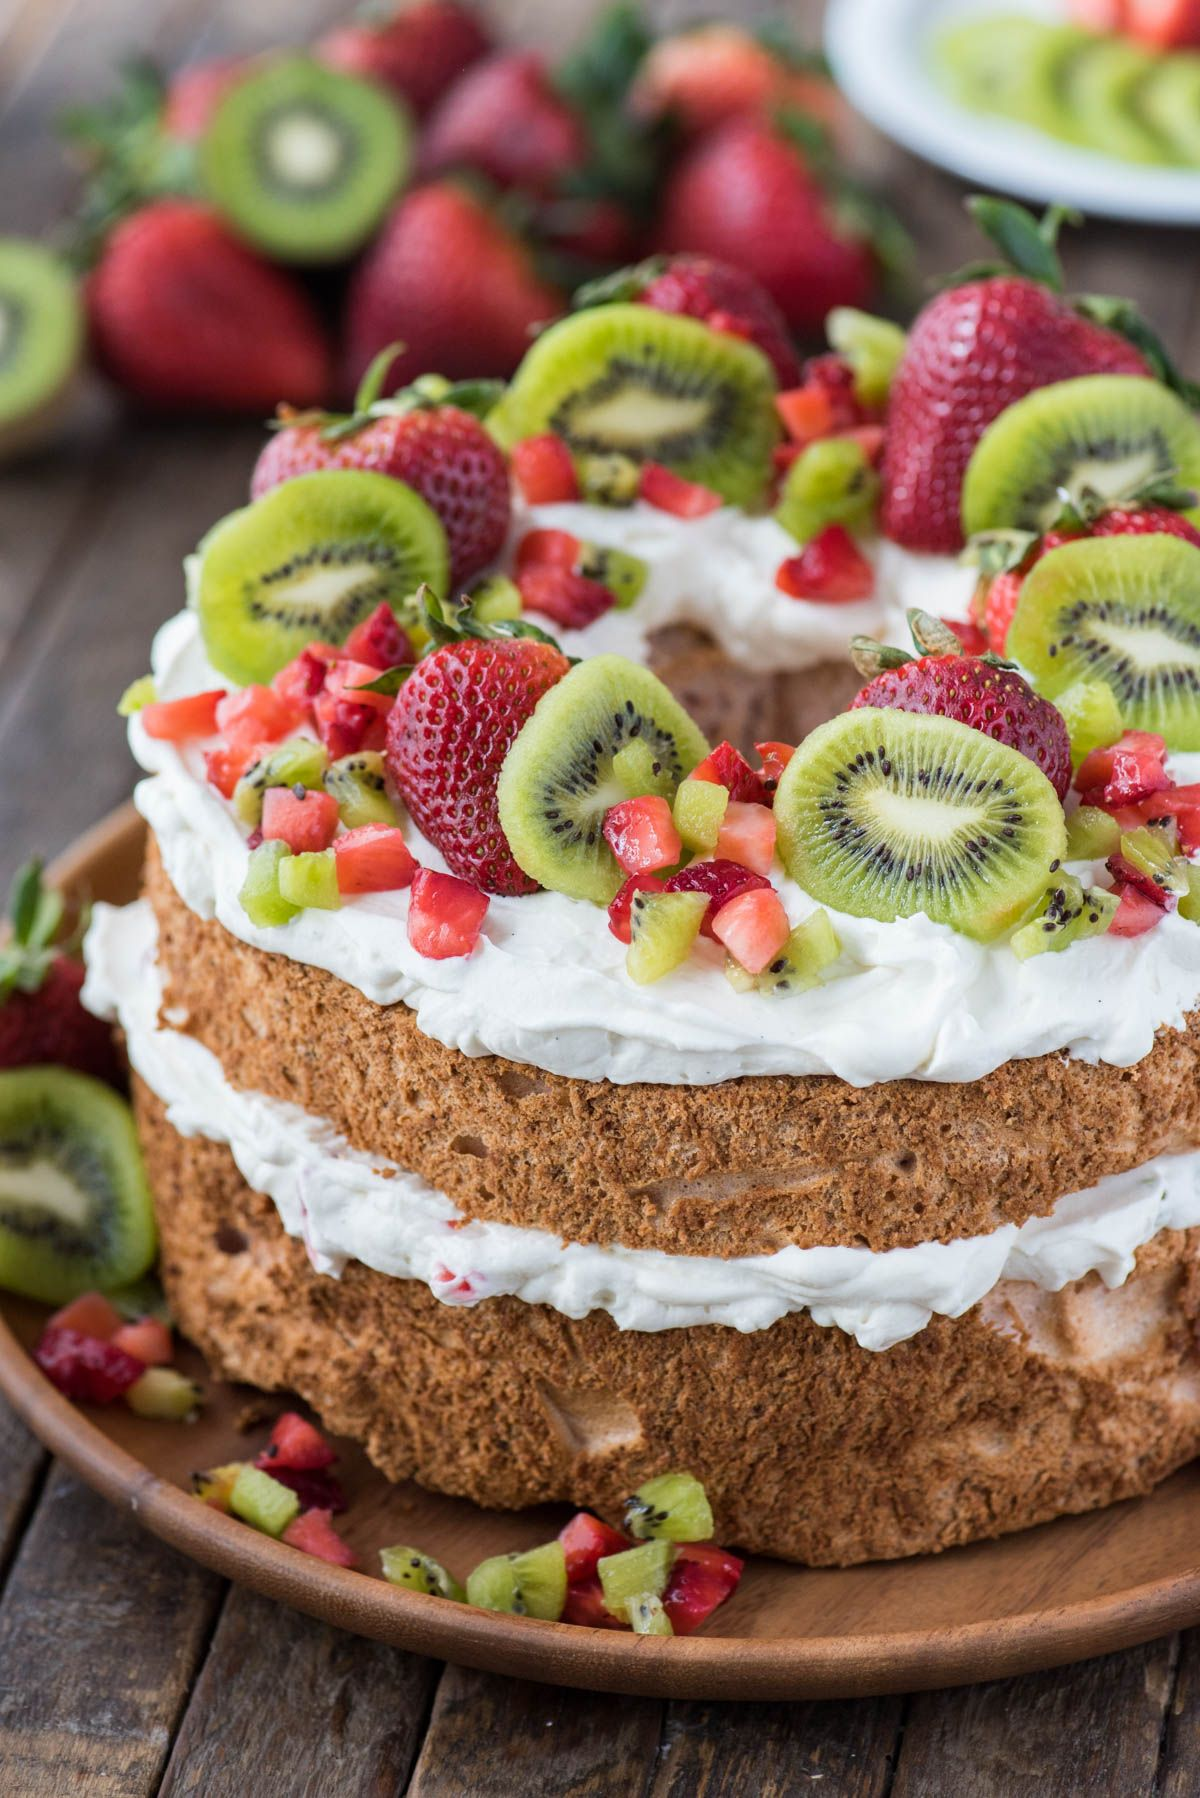 Flavored angel food cake is an epic summer dessert use